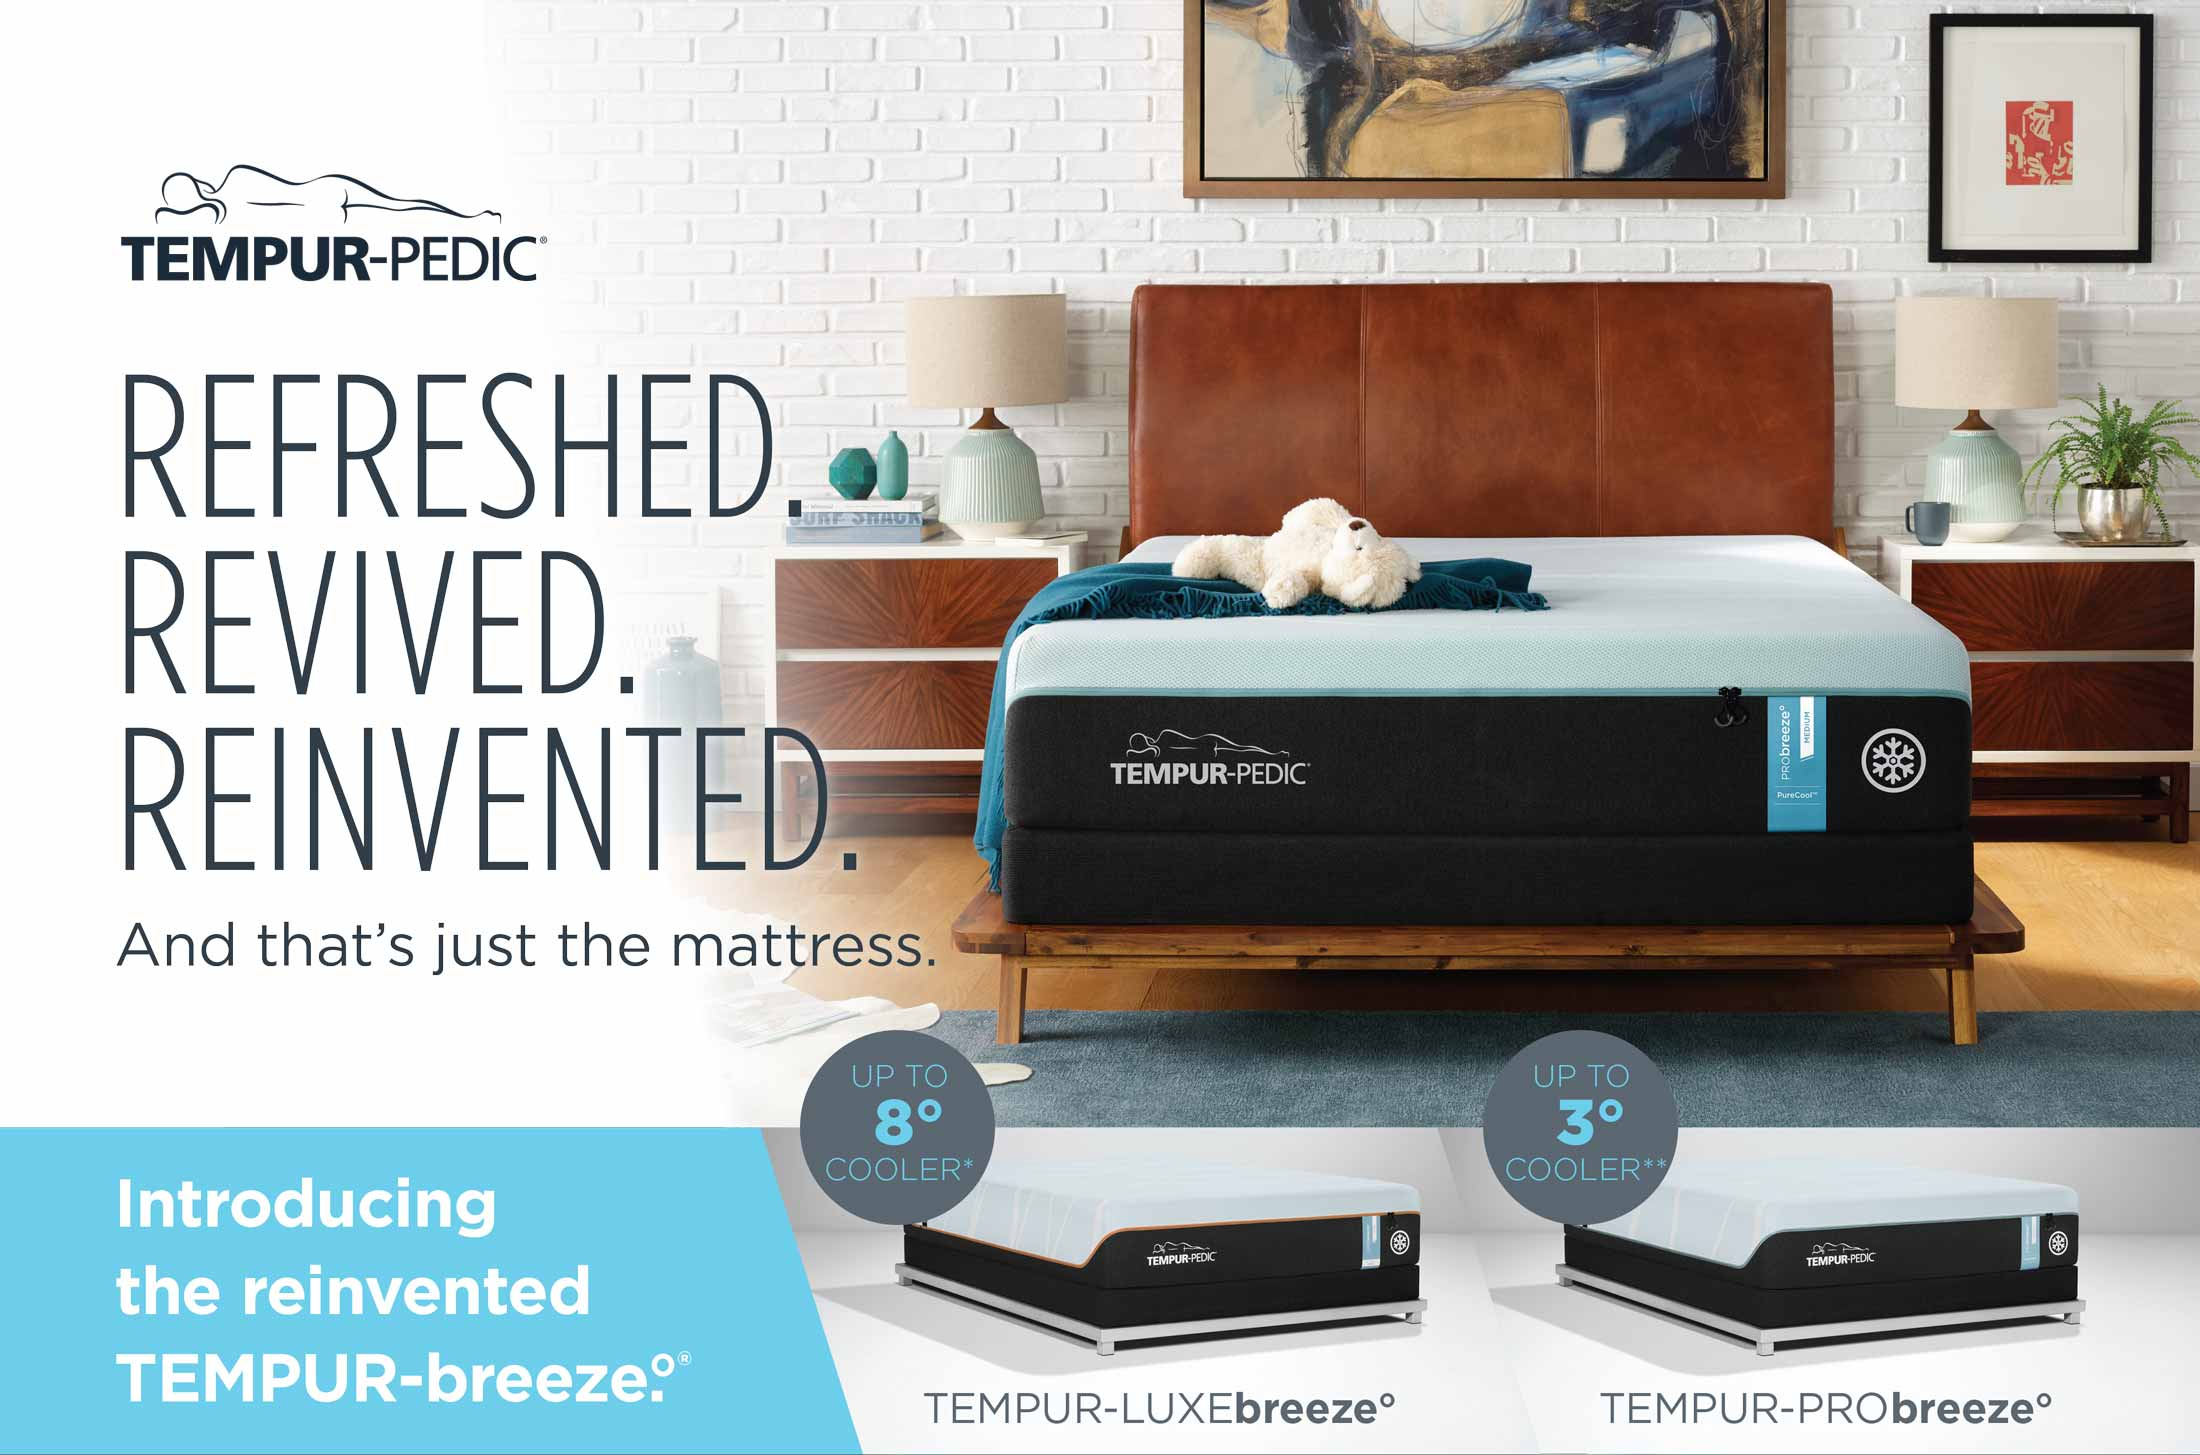 Mattresses from DeMeyer Furniture. Image is an advertisement fro a Tempur-Pedic and Tempur-Breeze beds.